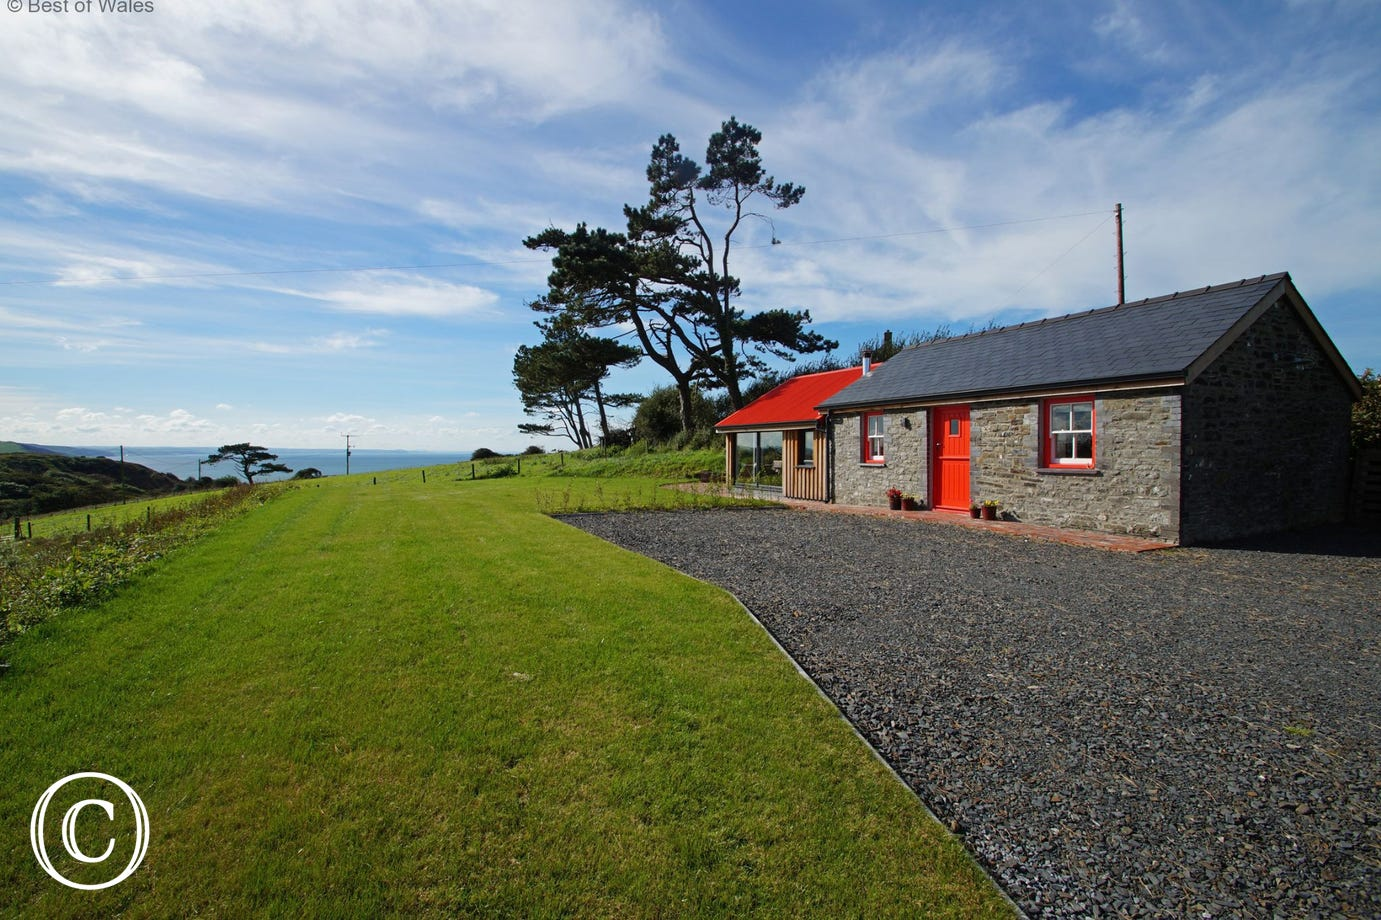 Detached, peaceful setting overlooking Aberystwyth and Cardigan Bay